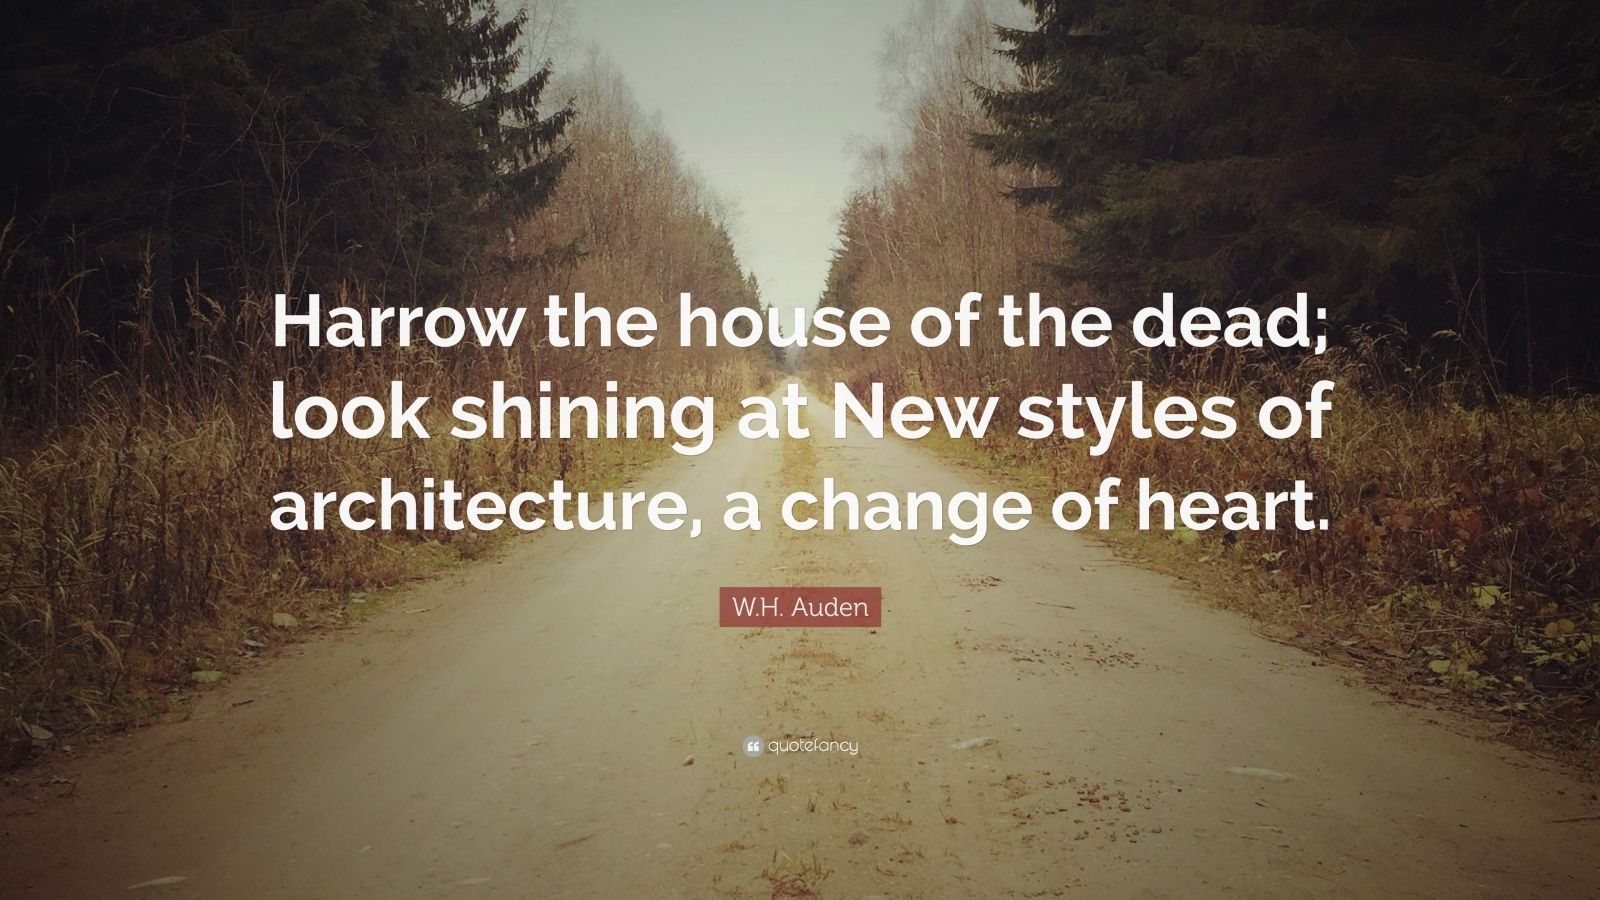 """W.H. Auden Quote: """"Harrow the house of the dead; look shining at New styles of architecture, a change of heart."""""""